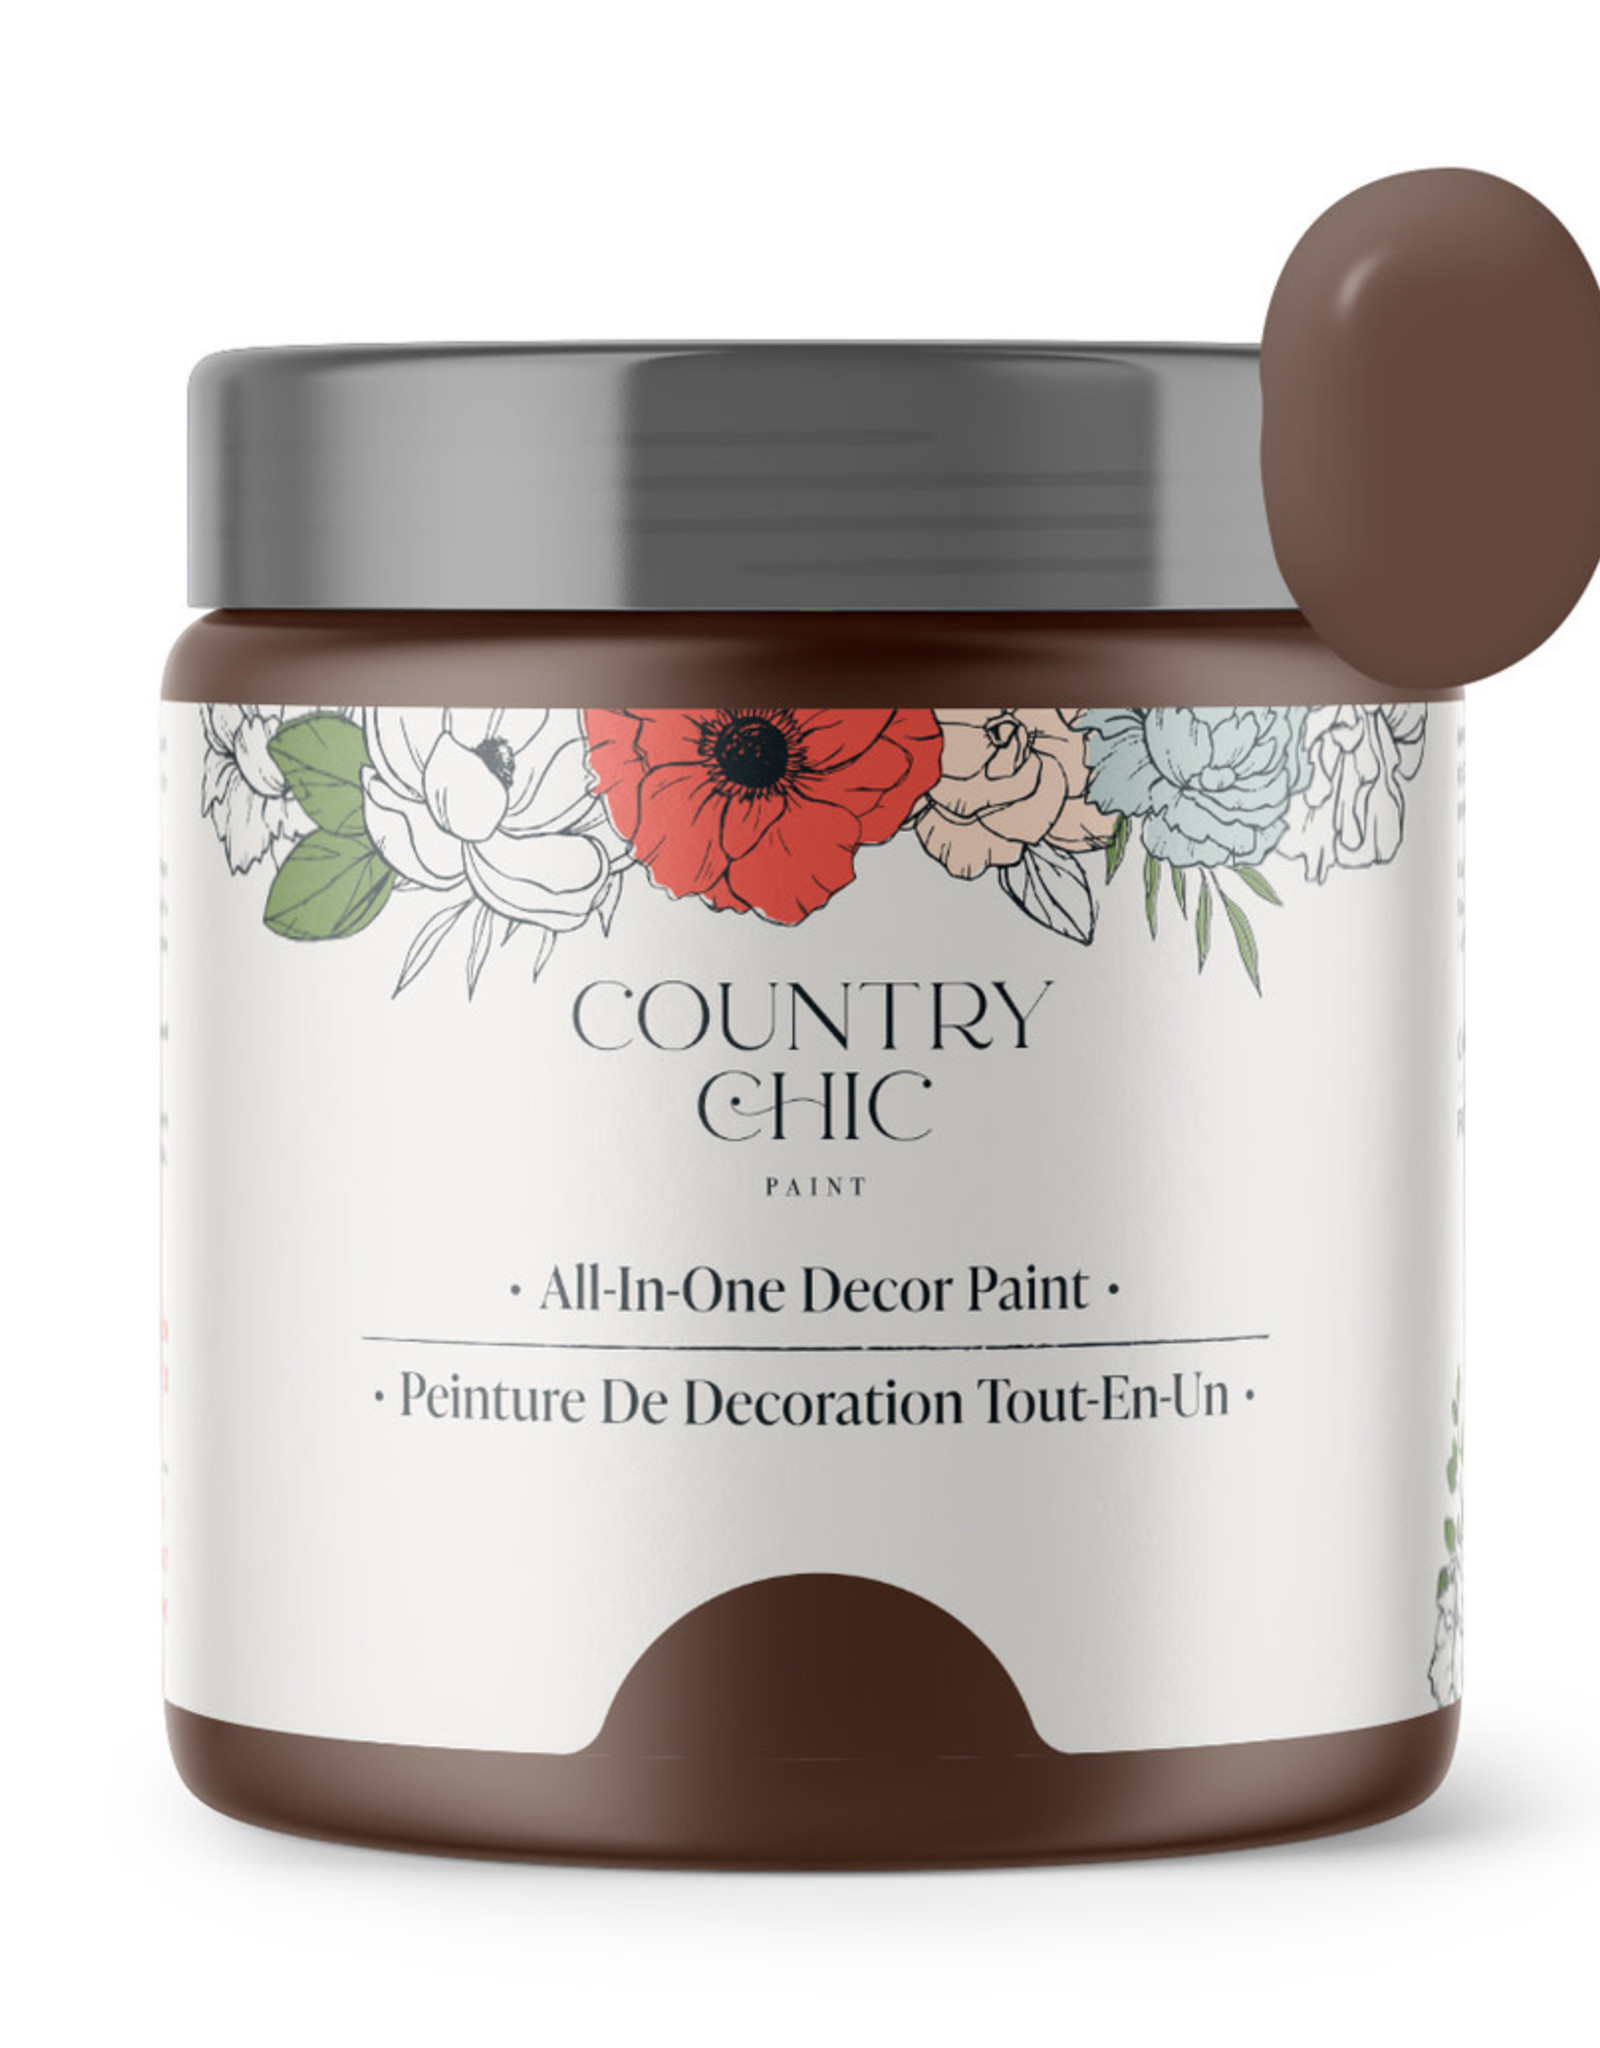 Country Chic Paint Sample - 4oz Leather Bound